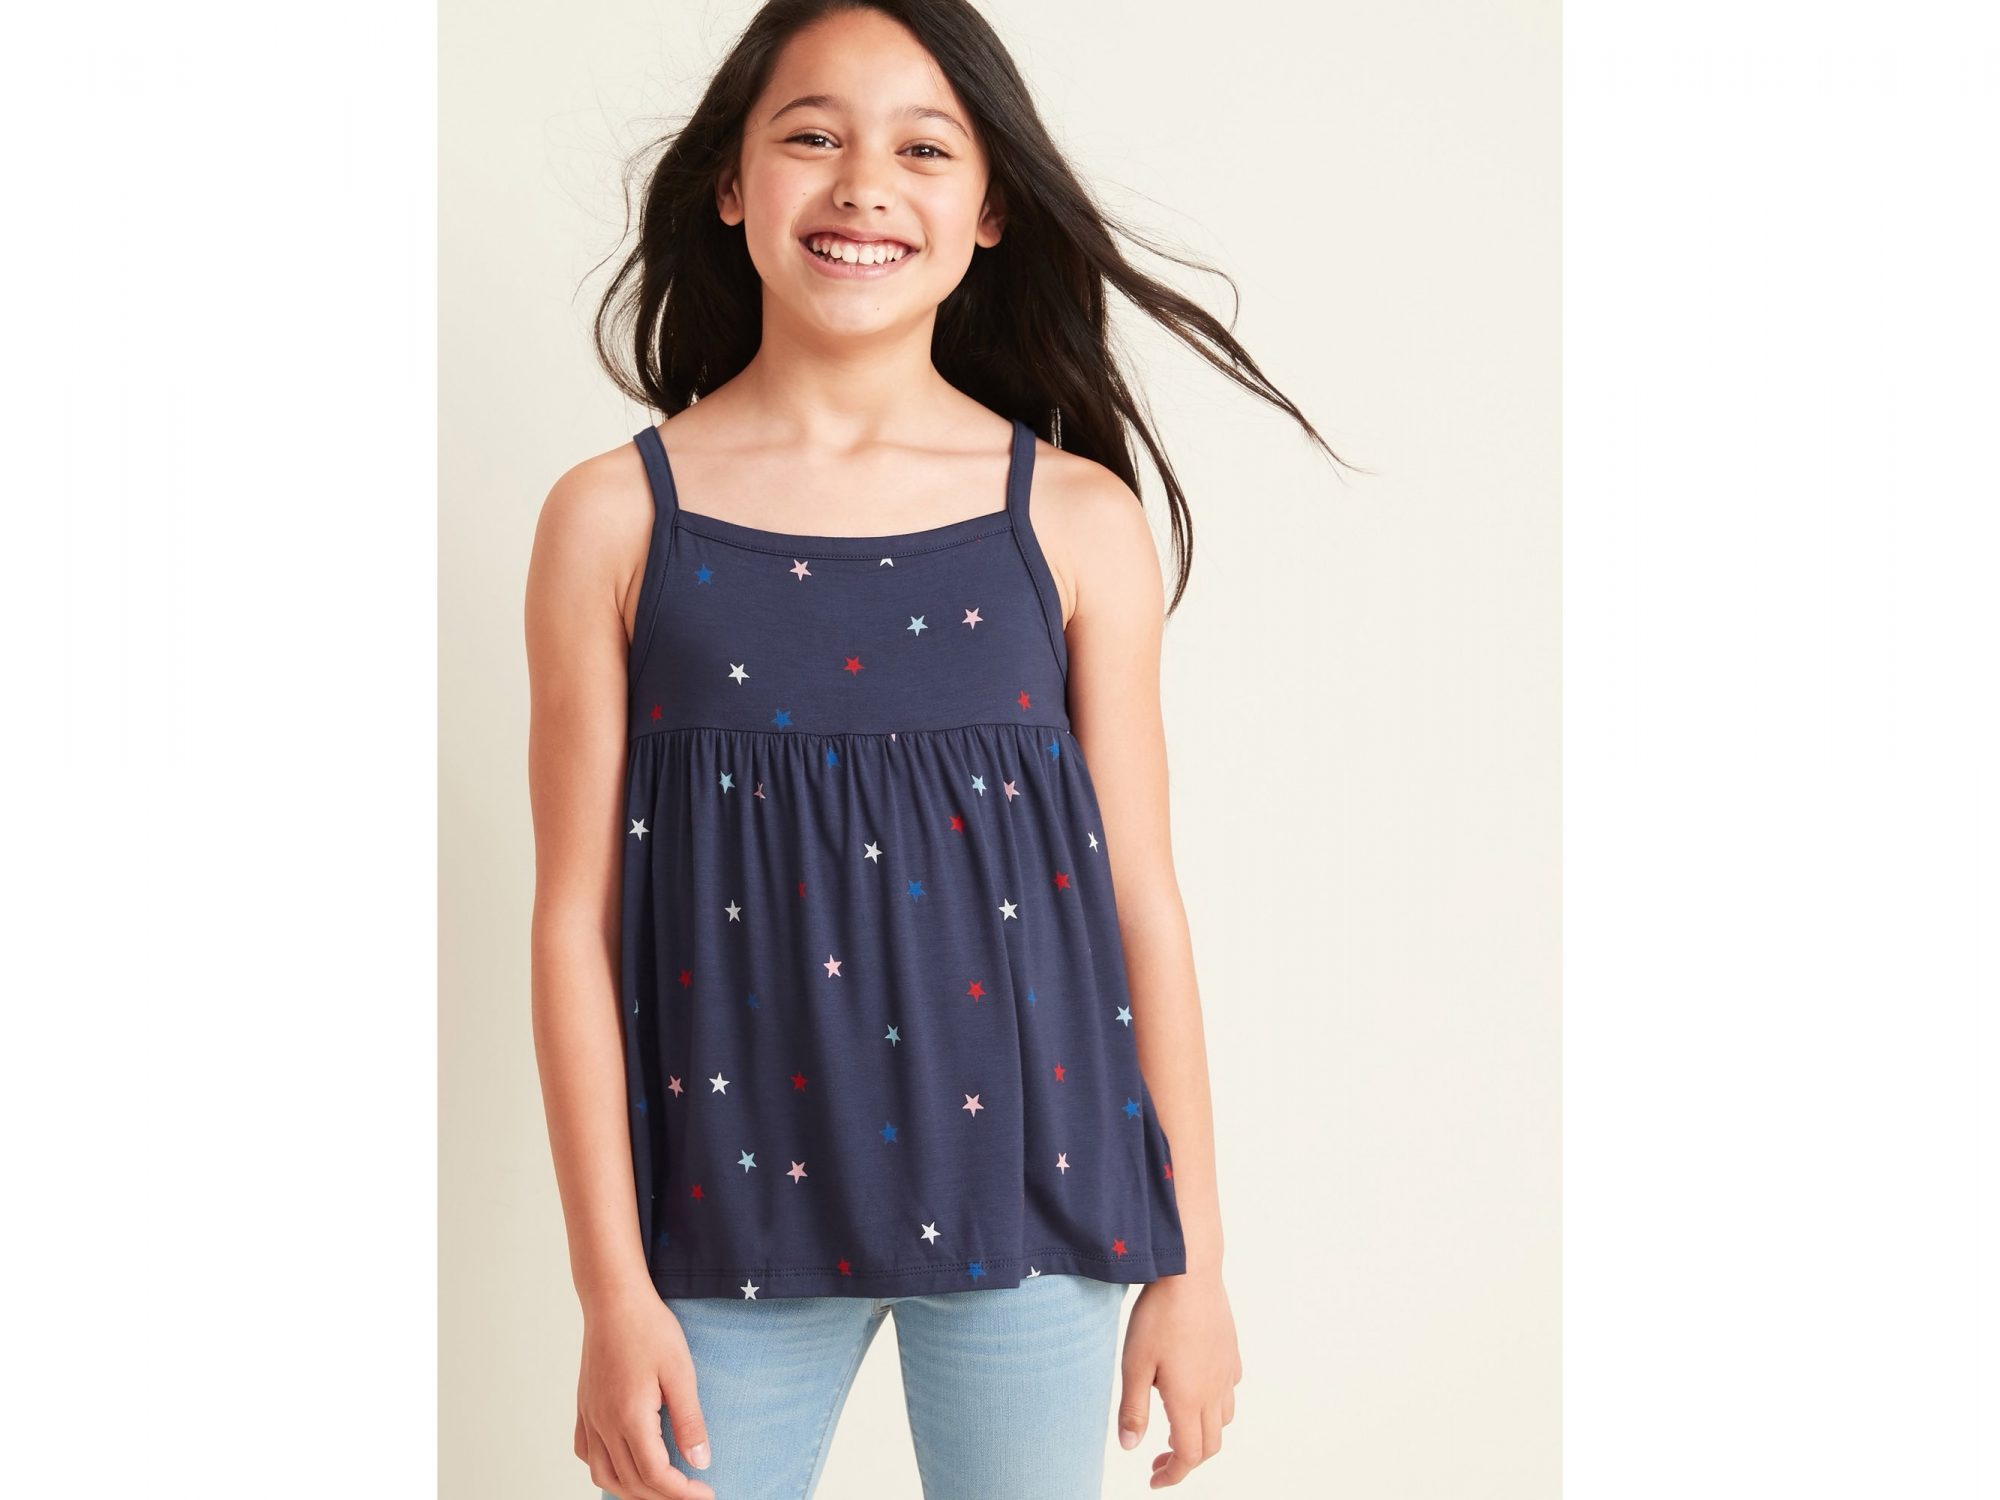 Patterned Jersey Sleeveless Top for Girls